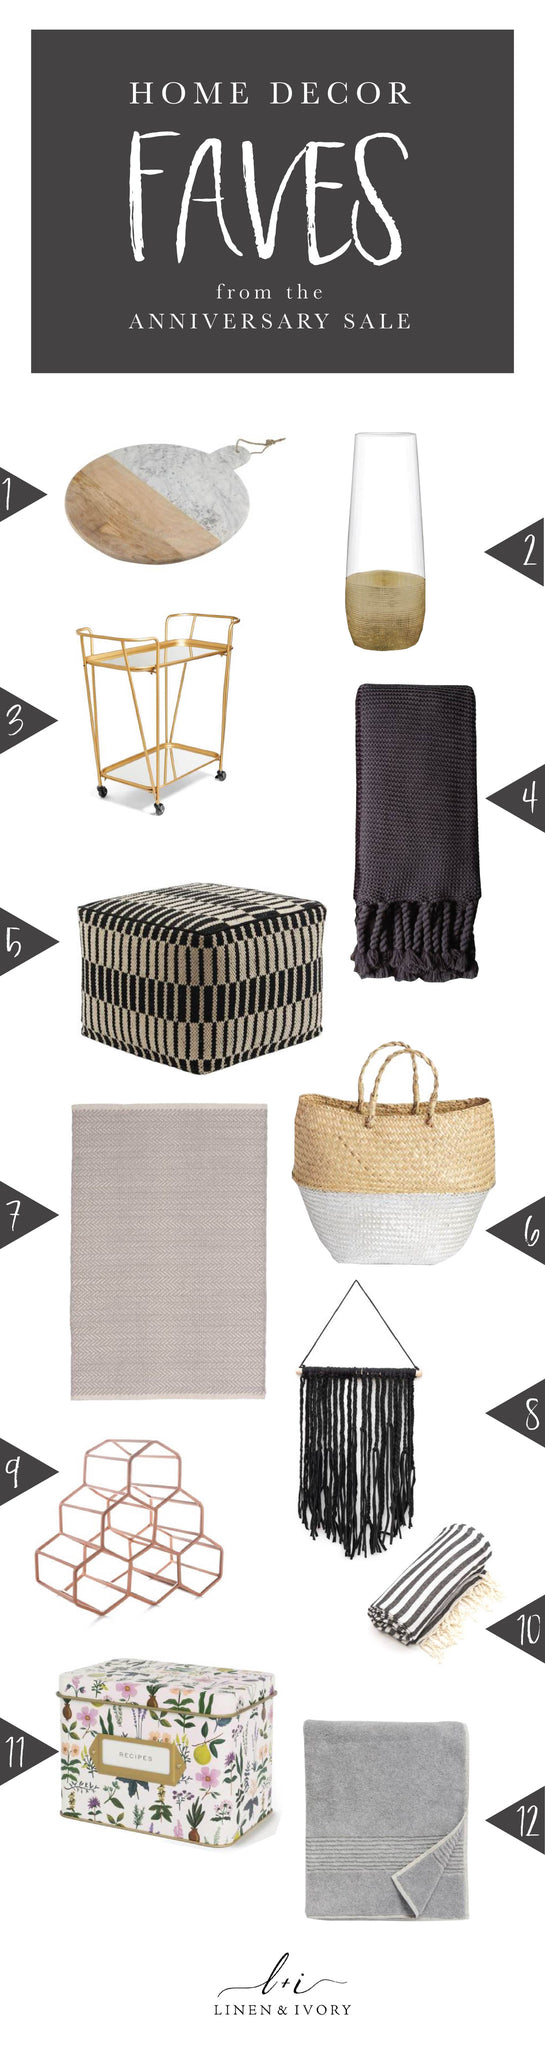 Nordstrom Anniversary Sale Home Decor Faves